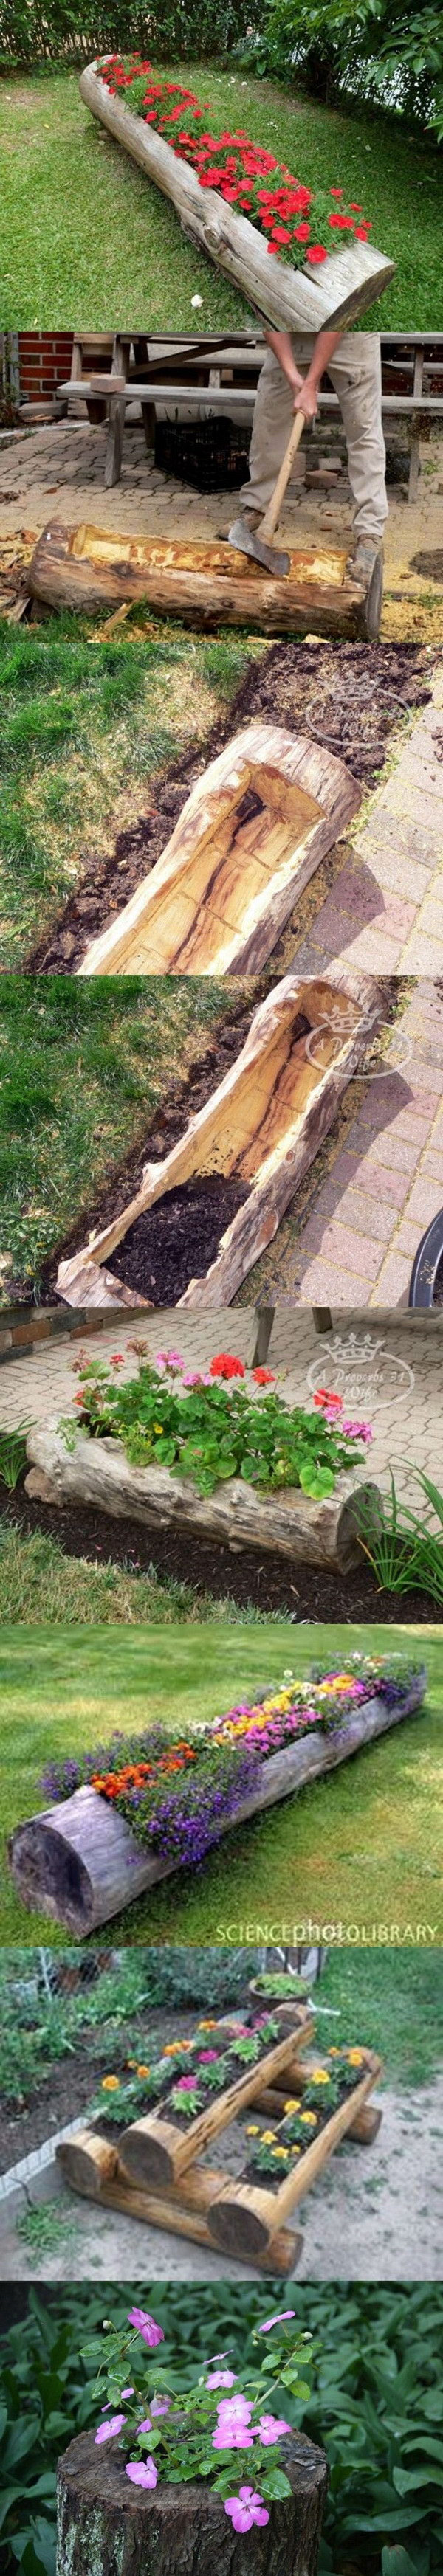 Make Beautiful Log Garden Planter